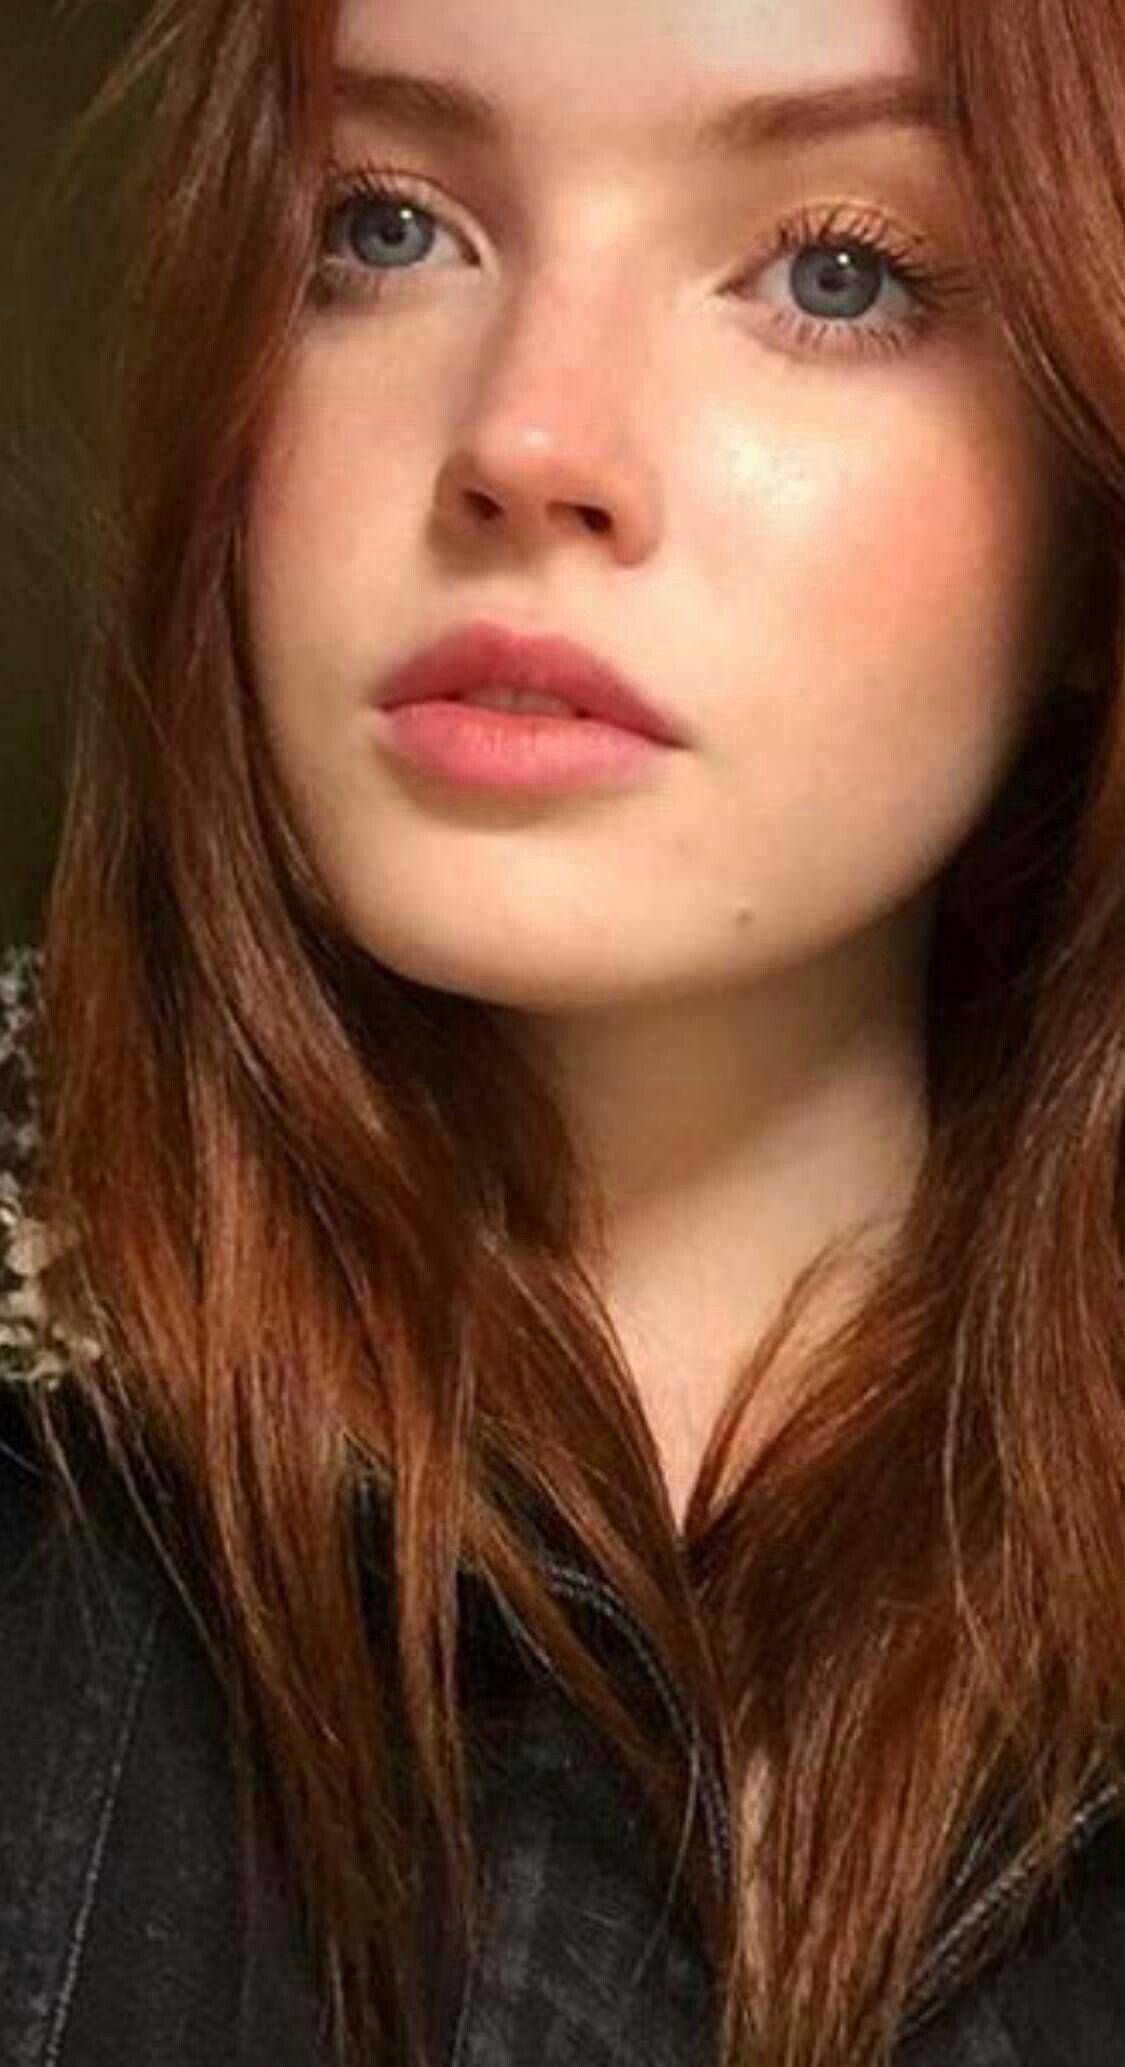 Redhead girl lovely redheads pinterest redheads red heads and